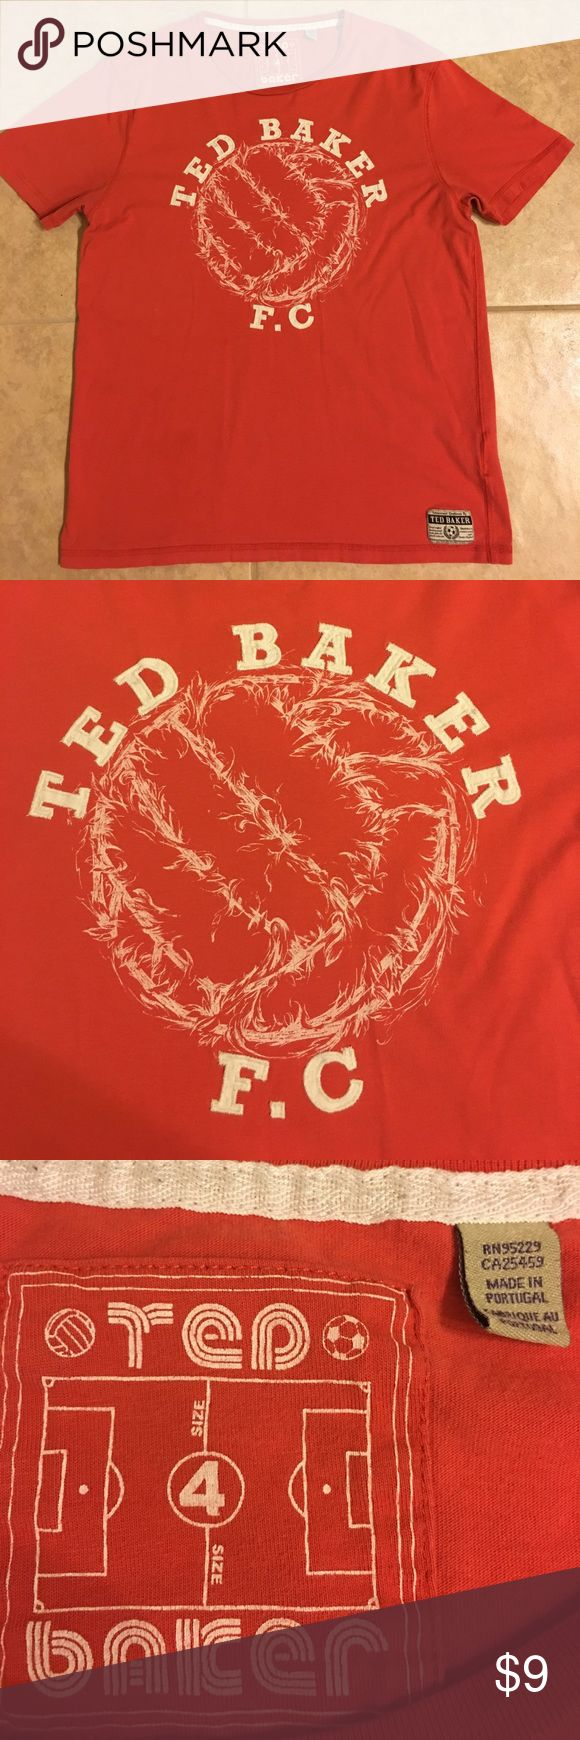 ☀️Men's Ted Baker Graphic Tee Shirt Size 4 Large Men's Ted Baker Graphic Tee Shirt.  Size 4- Large.  Reddish-Coral color.  Good Condition.  Smoke-free home, bundle and save! Ted Baker Shirts Tees - Short Sleeve